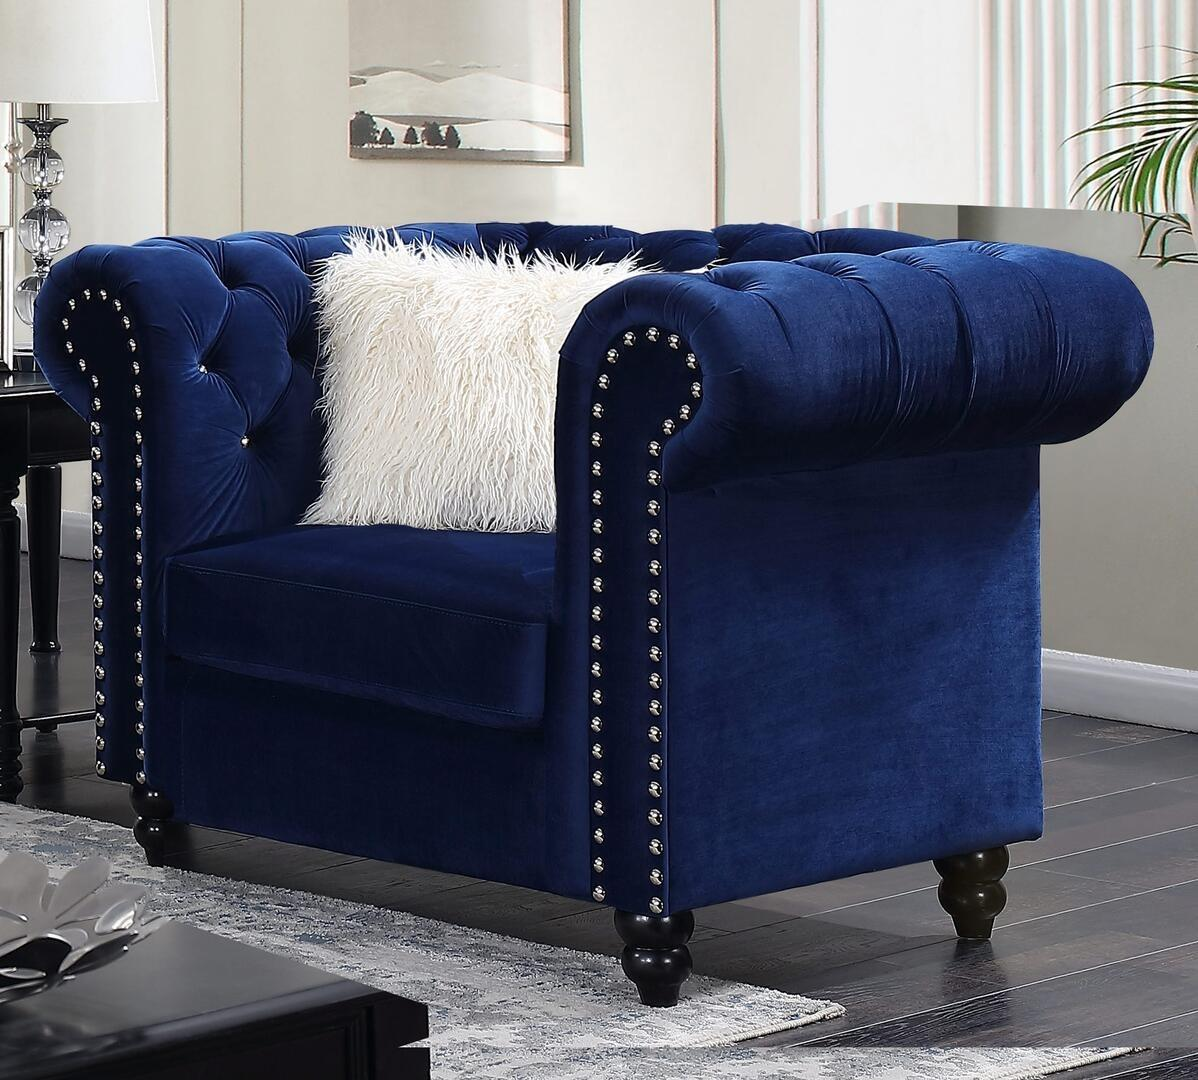 Transitional Blue Fabric Arm Chairs 1 pcs Cosmos Furniture MAYACHAIR